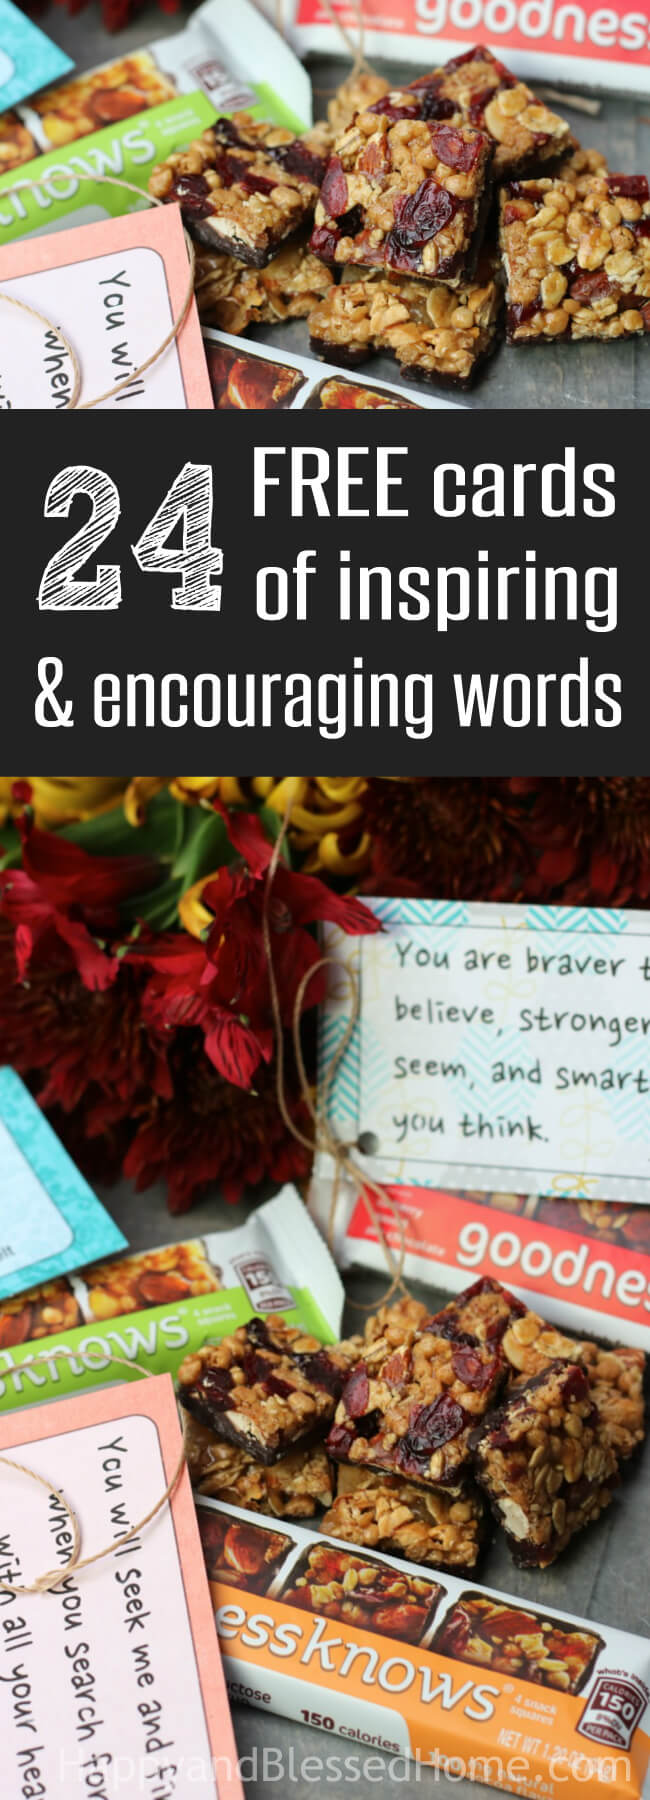 Need some inspiration? 24 FREE Printable Cards with words of encouragement and inspiration from HappyandBlessedHome.com.jpg